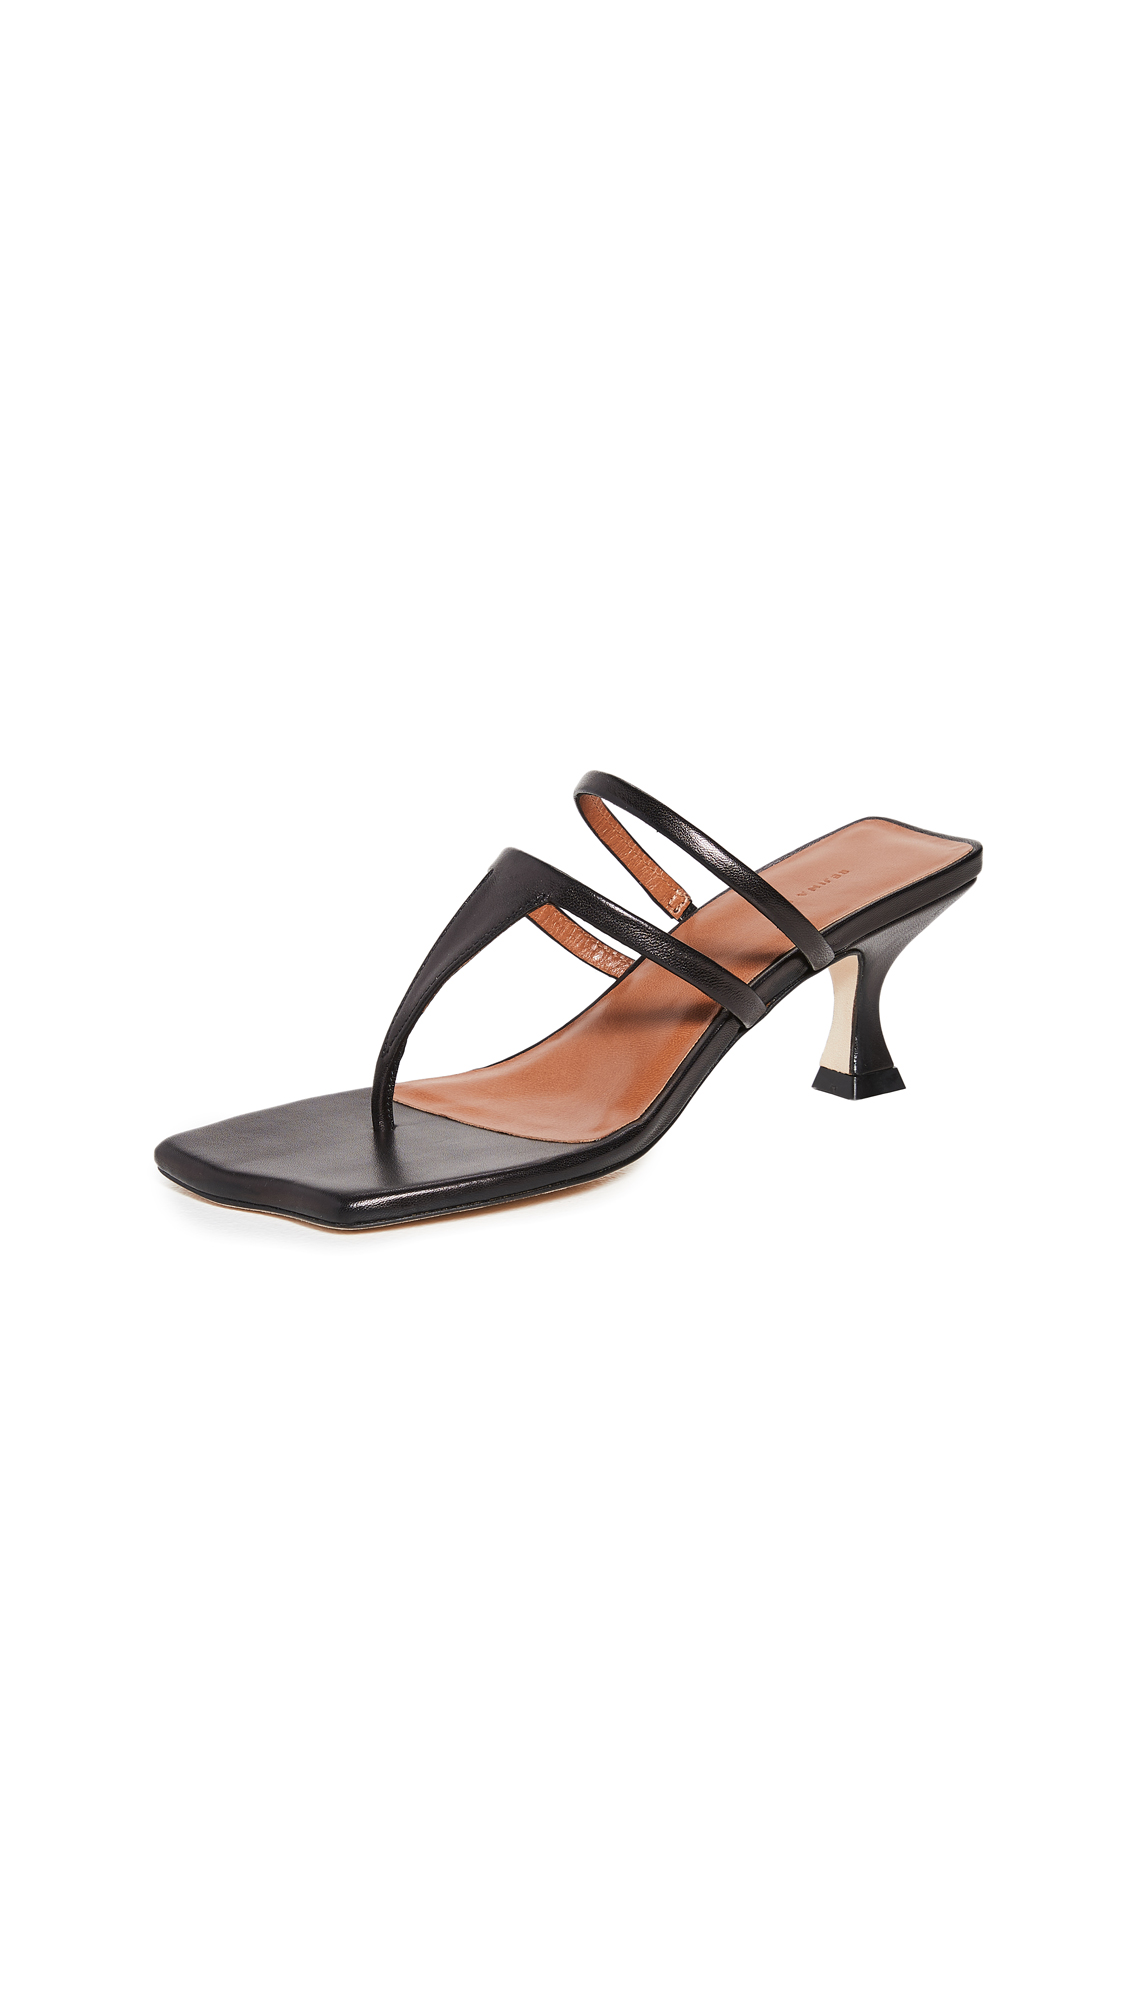 Rejina Pyo 60mm Allie Sandals